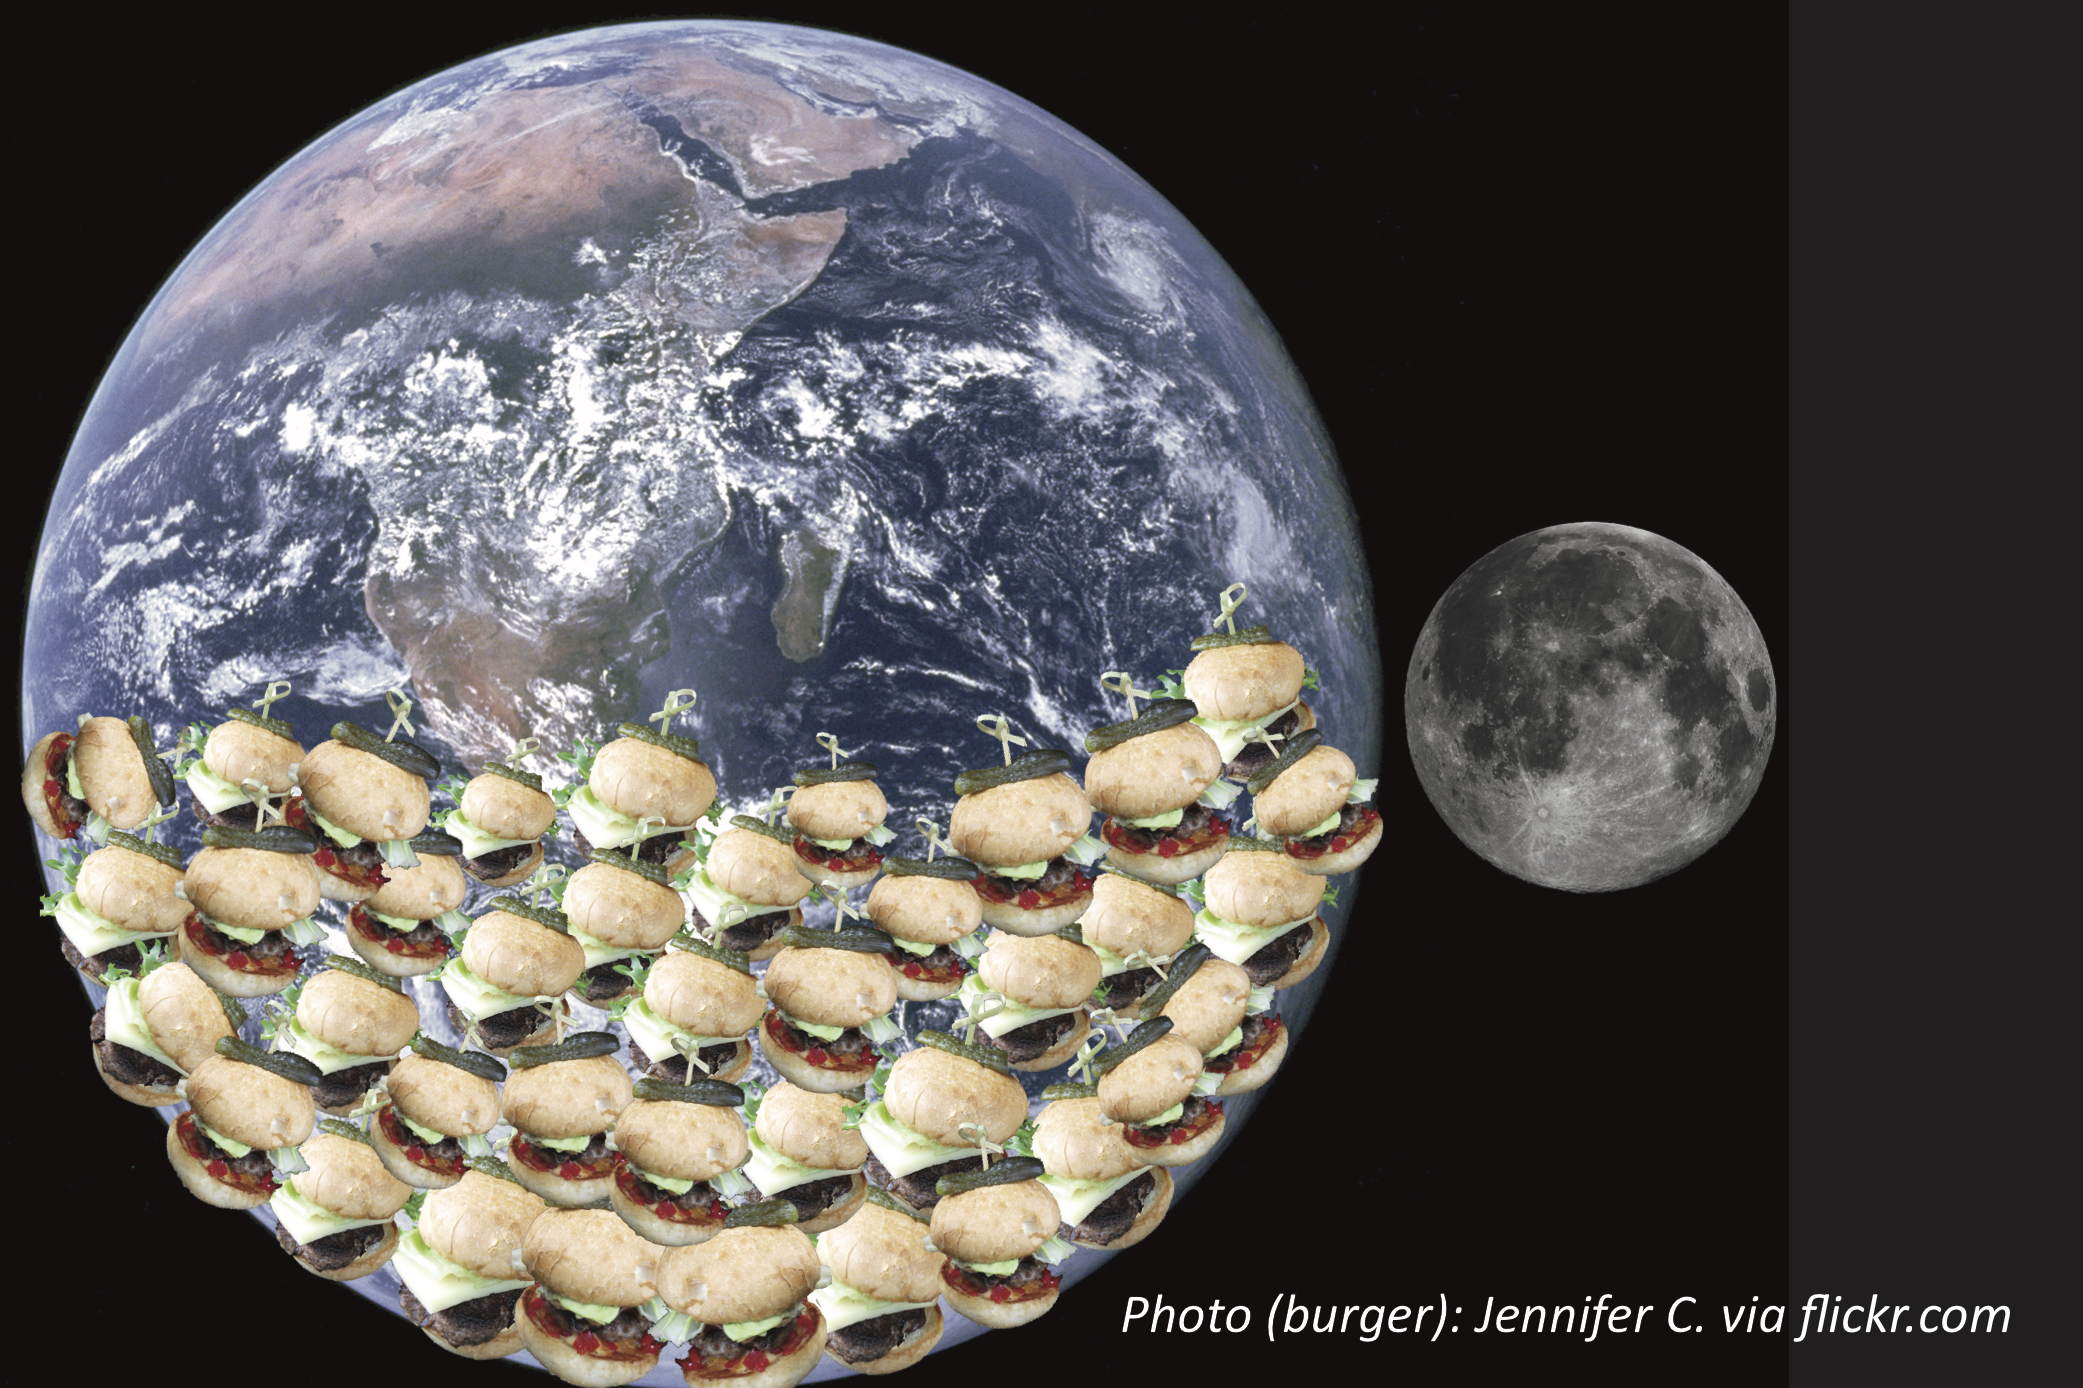 How Many Burgers Could Fit Inside Earth?